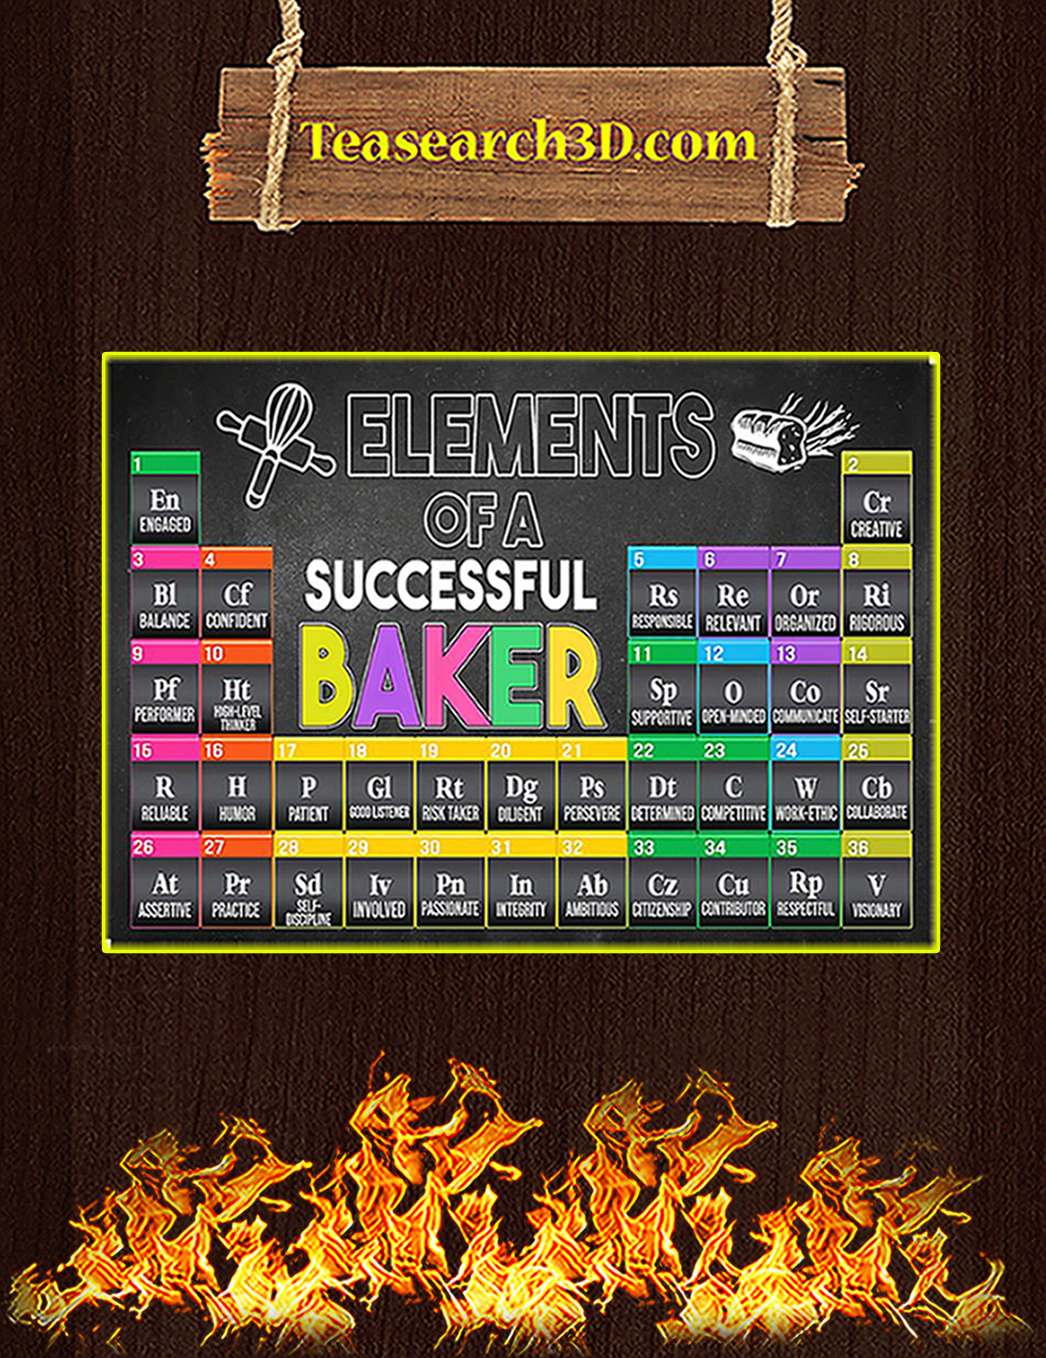 Elements of a successful baker poster A1